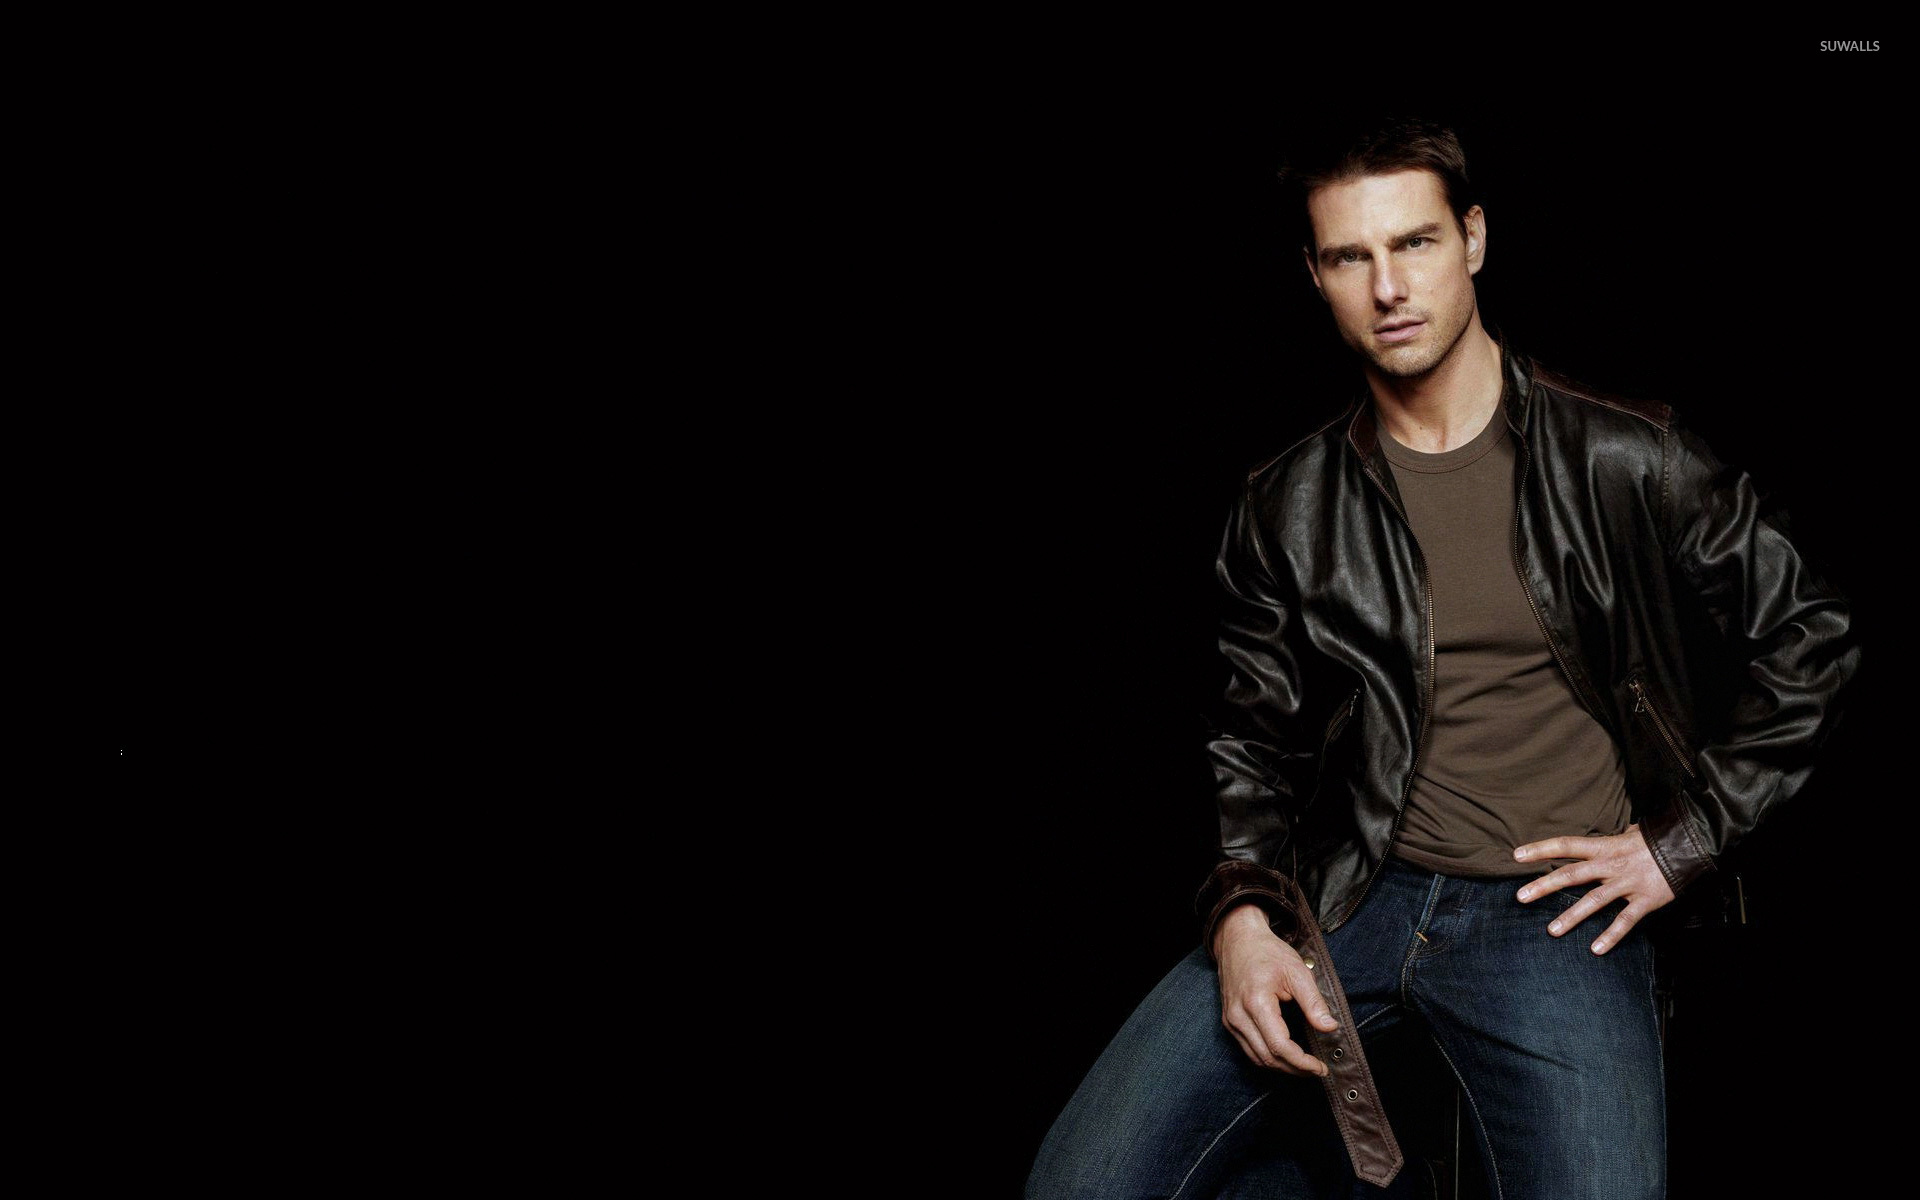 Tom Cruise wallpaper   Male celebrity wallpapers   8521 1920x1200